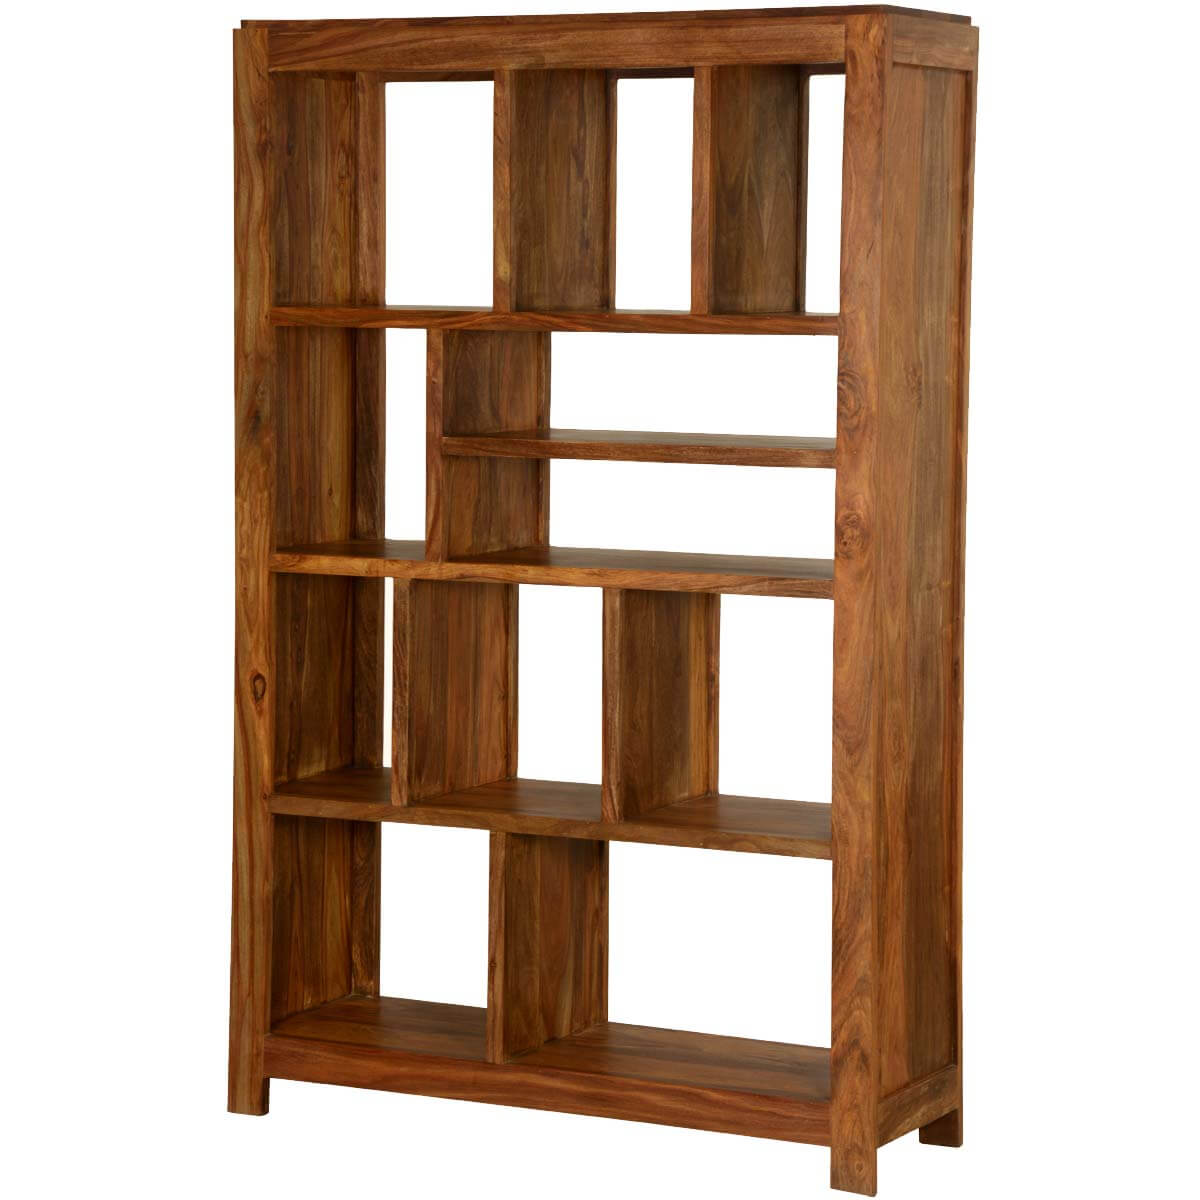 Simply modern solid wood section display rack cube bookcase